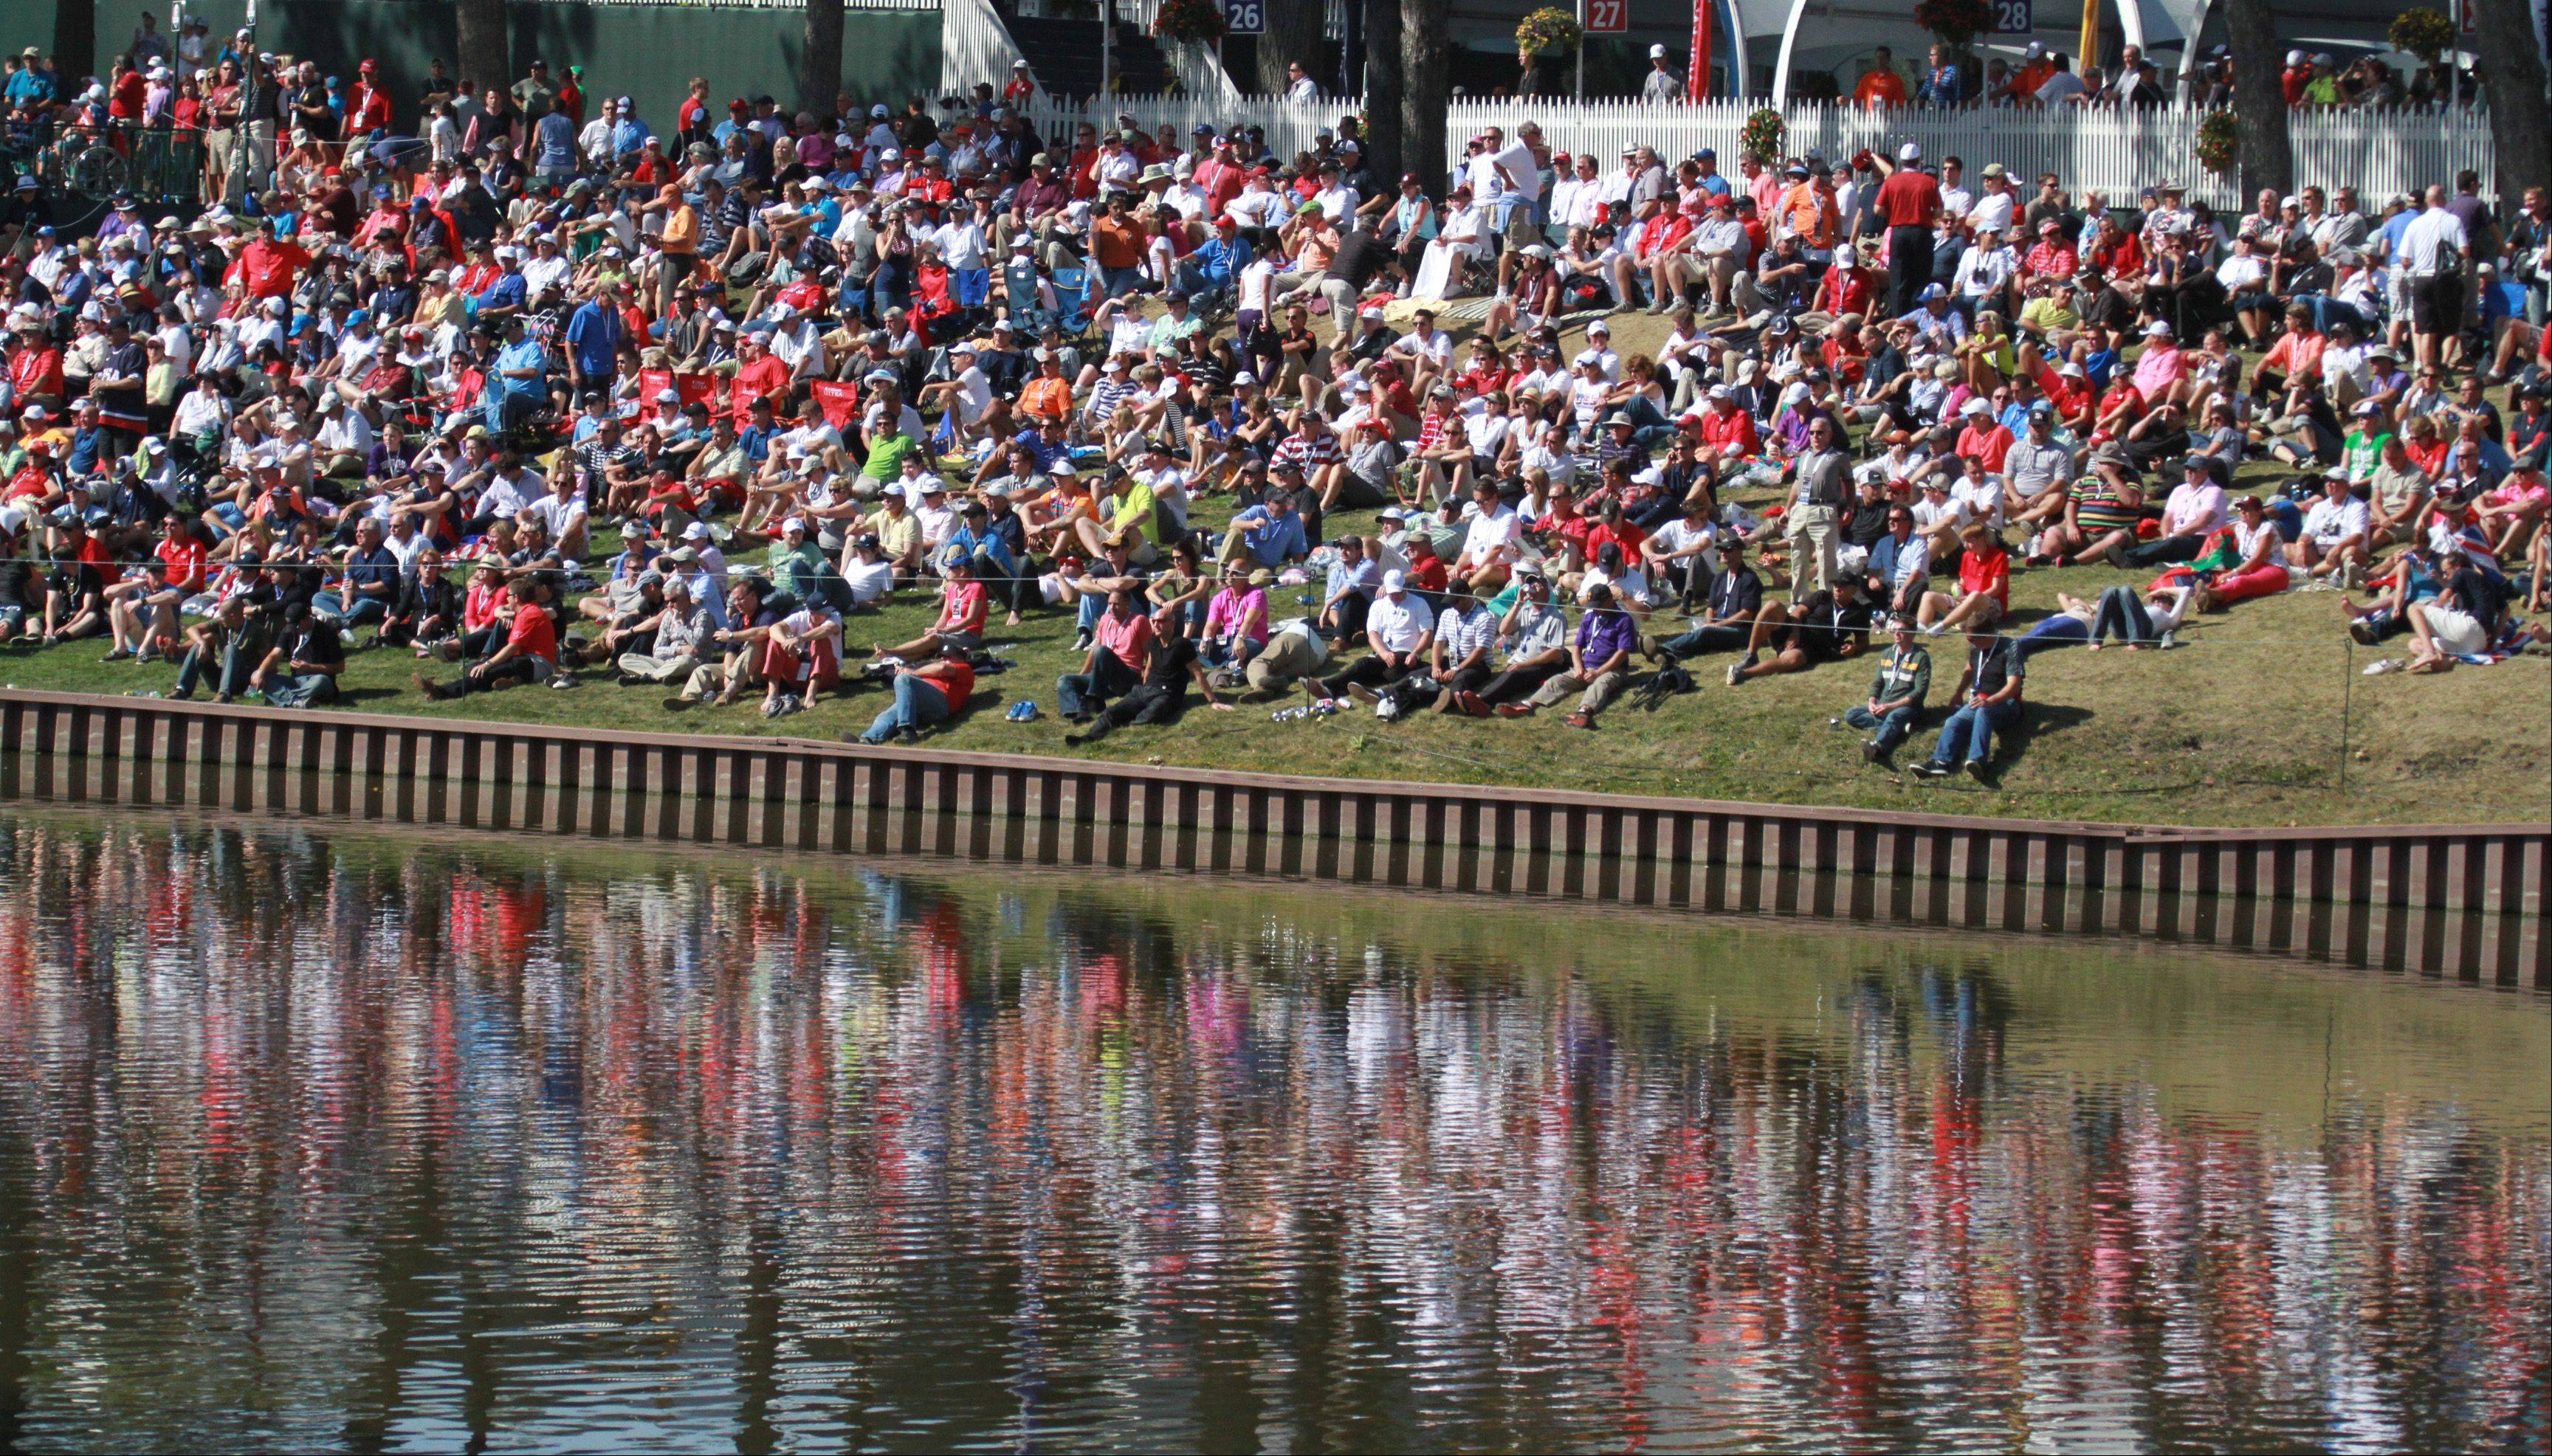 Massive crowds lined every conceivable piece of open space during the afternoon matches of the Ryder Cup at Medinah Country Club.